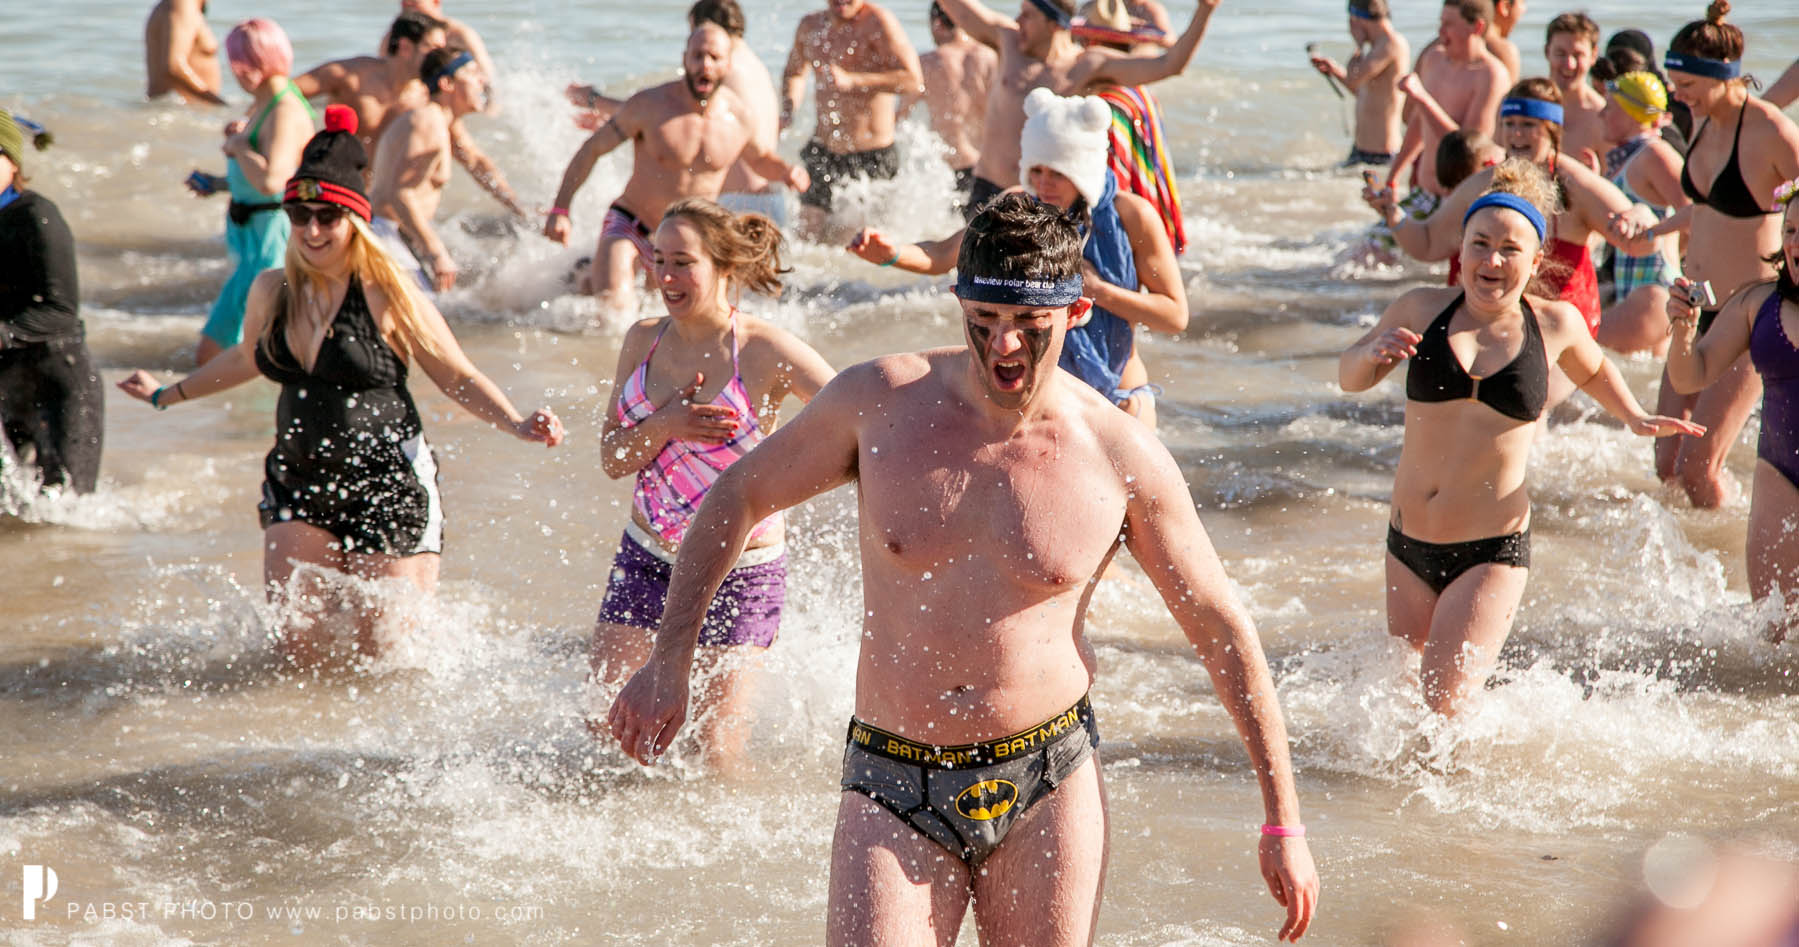 Polar Plunge 2013 Chicago Pabst Photo (28 of 69)